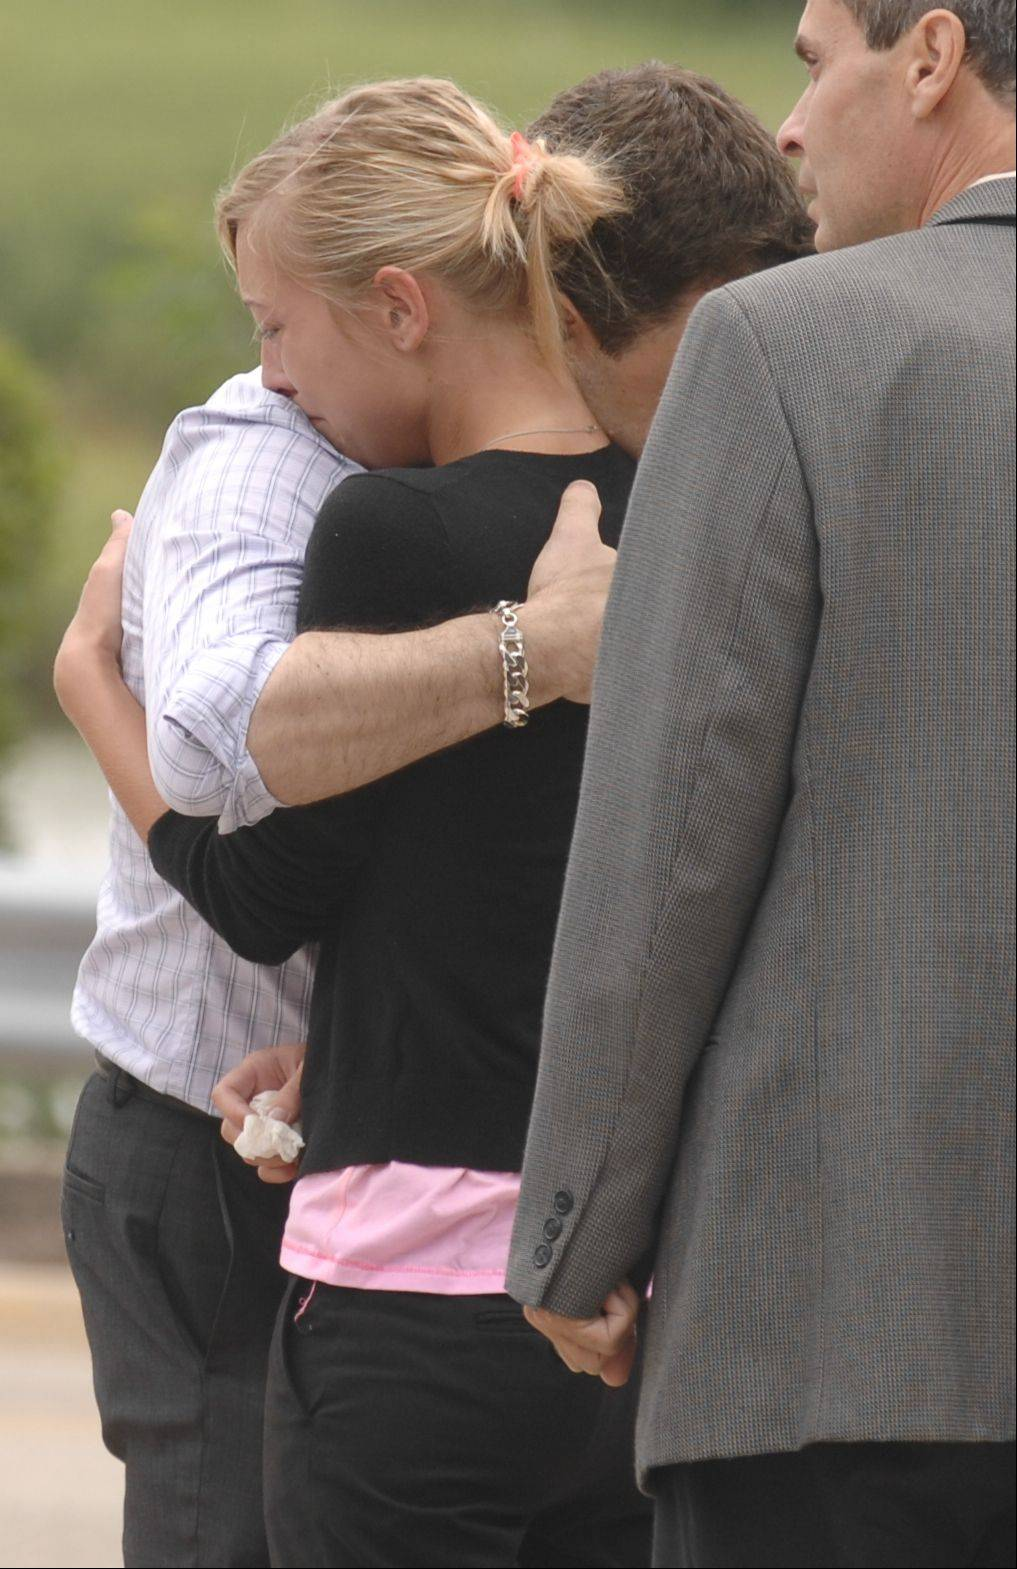 Linnea Nodarse, sister of Jacob Nodarse, grieves Monday with family members outside the DuPage County Court building after her brother was sentenced to 75 years in prison or the triple murder of members of the Kramer family in Darien in 2010.